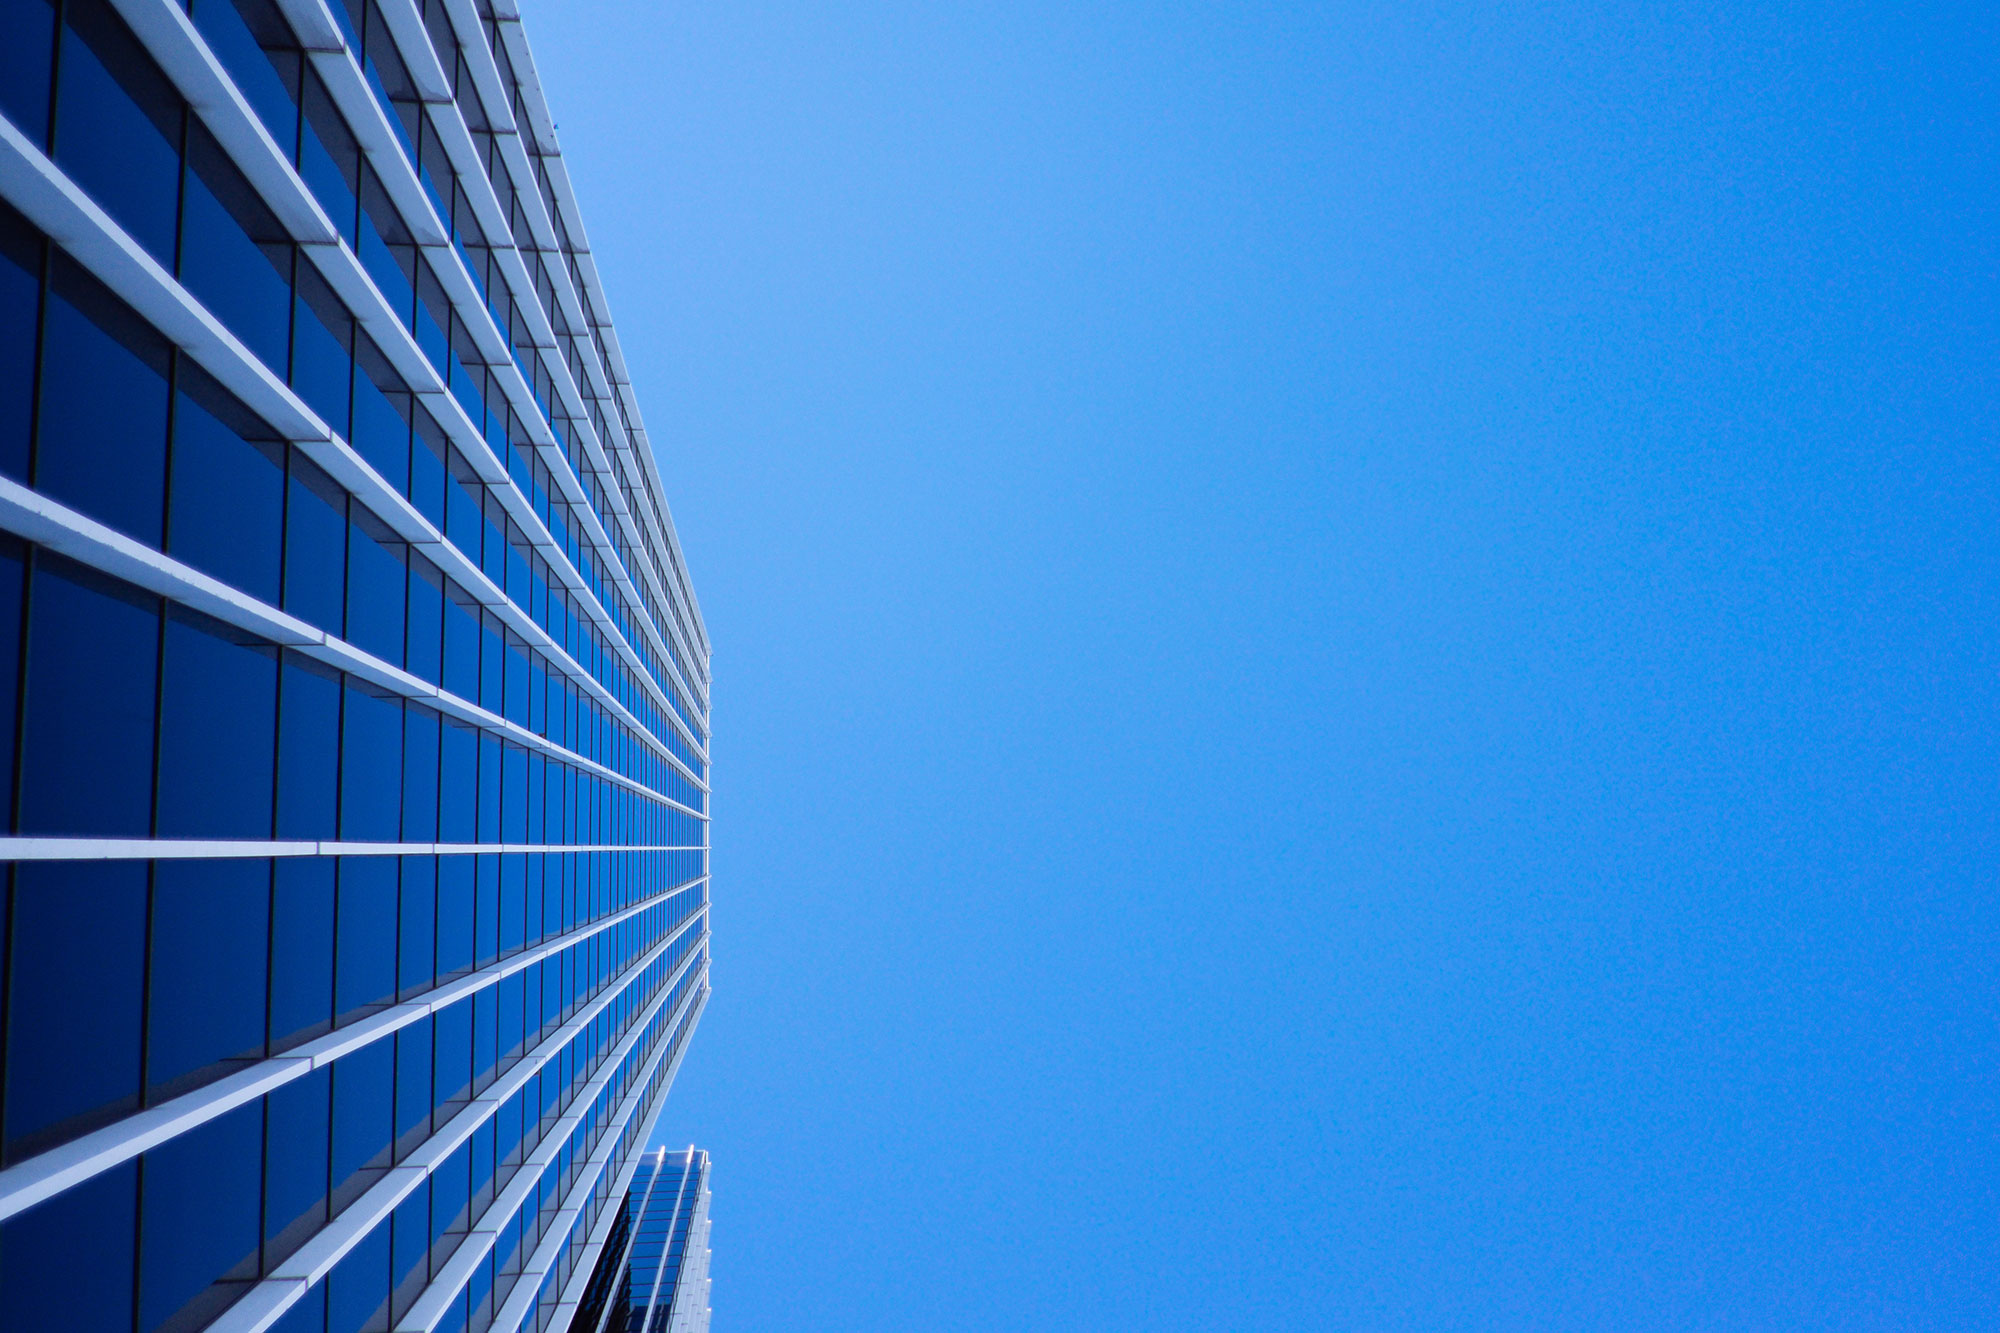 Blue office building with blue sky